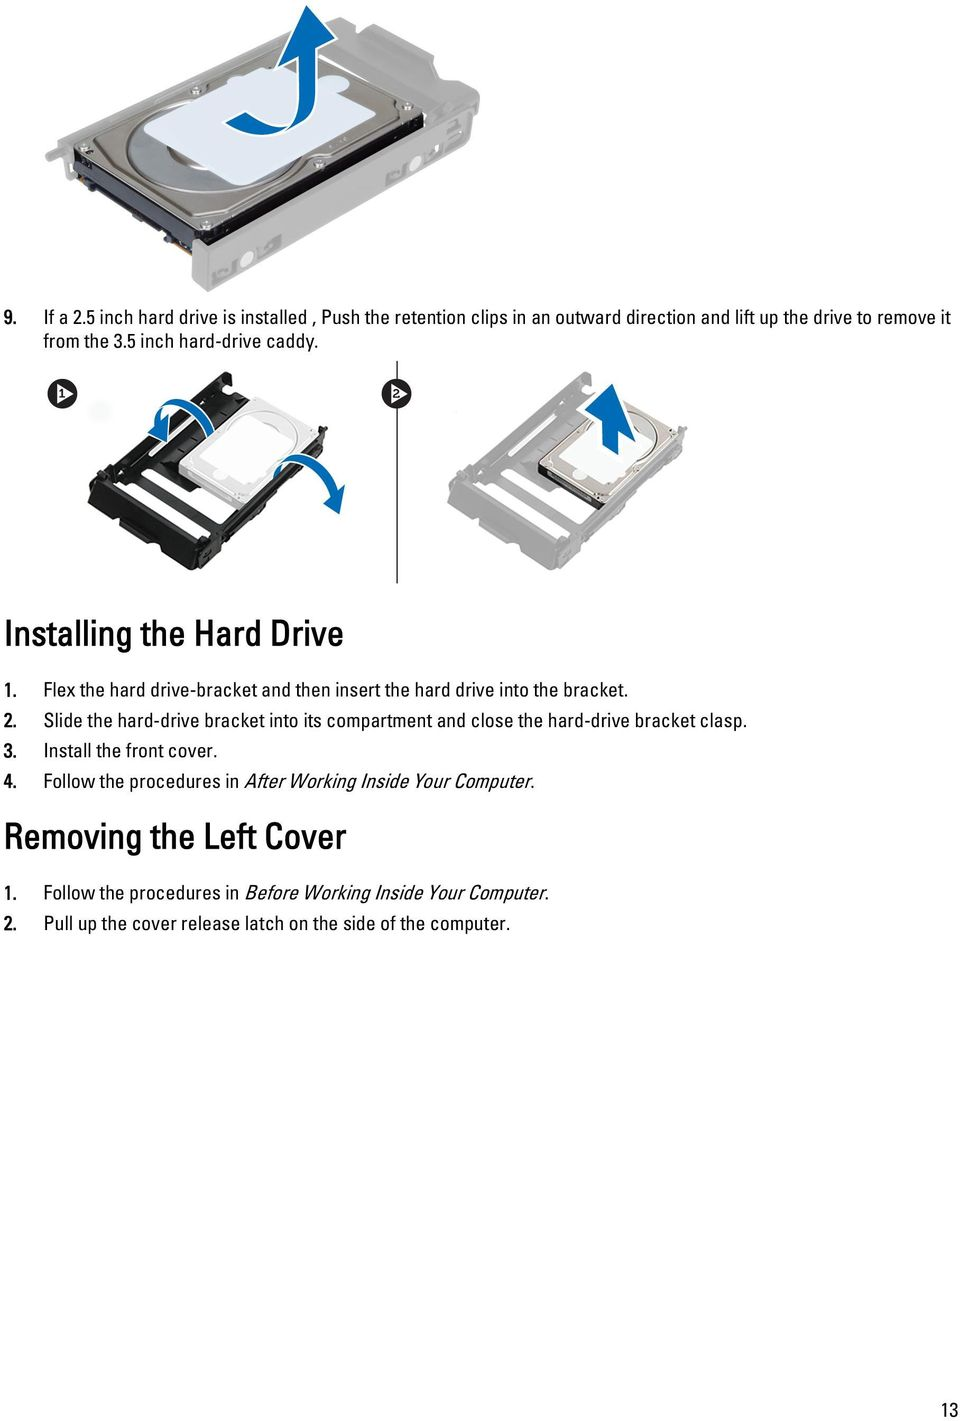 Wire Puter Fan Wiring Diagram Also Dell Latitude E6330 Precision Workstation T7600 Owners Manual Pdf Slide The Hard Drive Bracket Into Its Compartment And Close